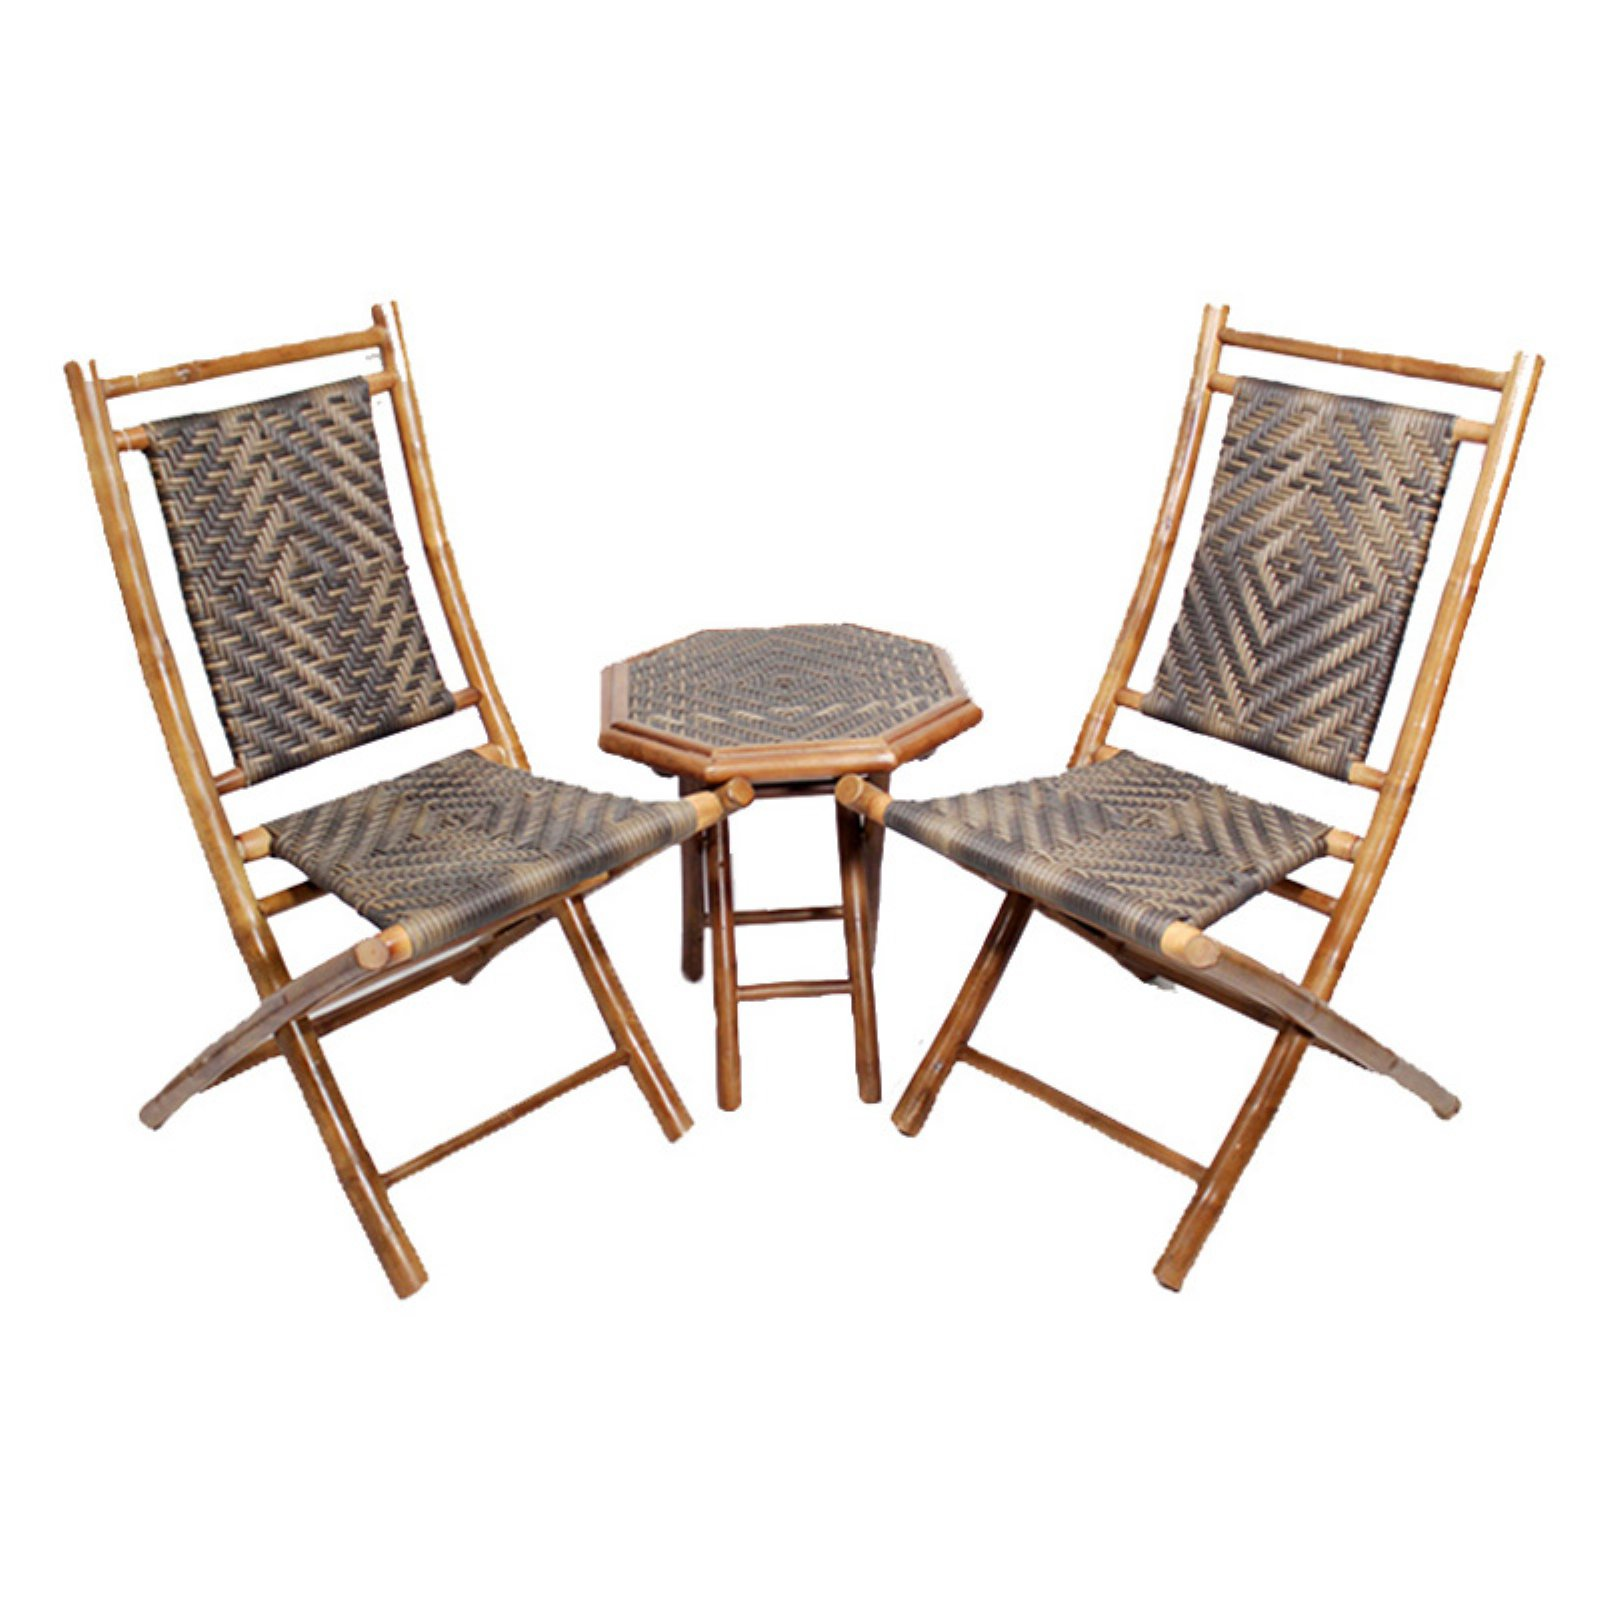 Heather Ann Creations Hana 3 Piece Bamboo Patio Conversation Set